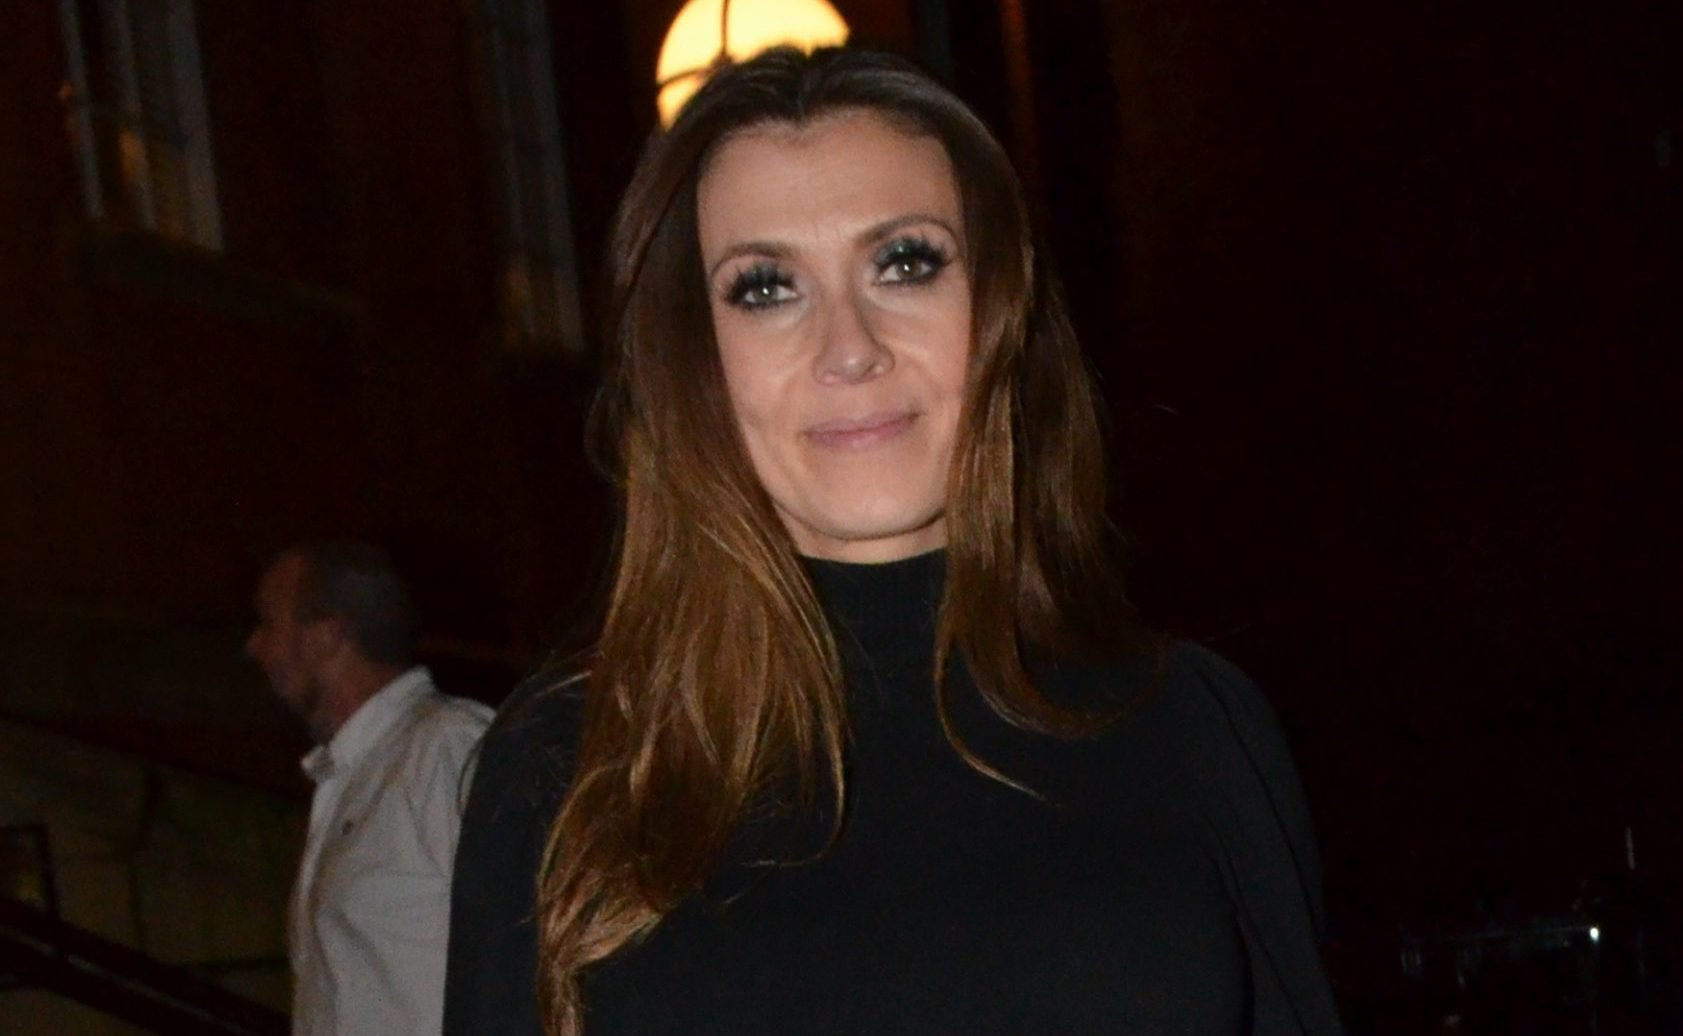 Kym Marsh 'freaked' over intruder fears as she admits to having sleeping problems